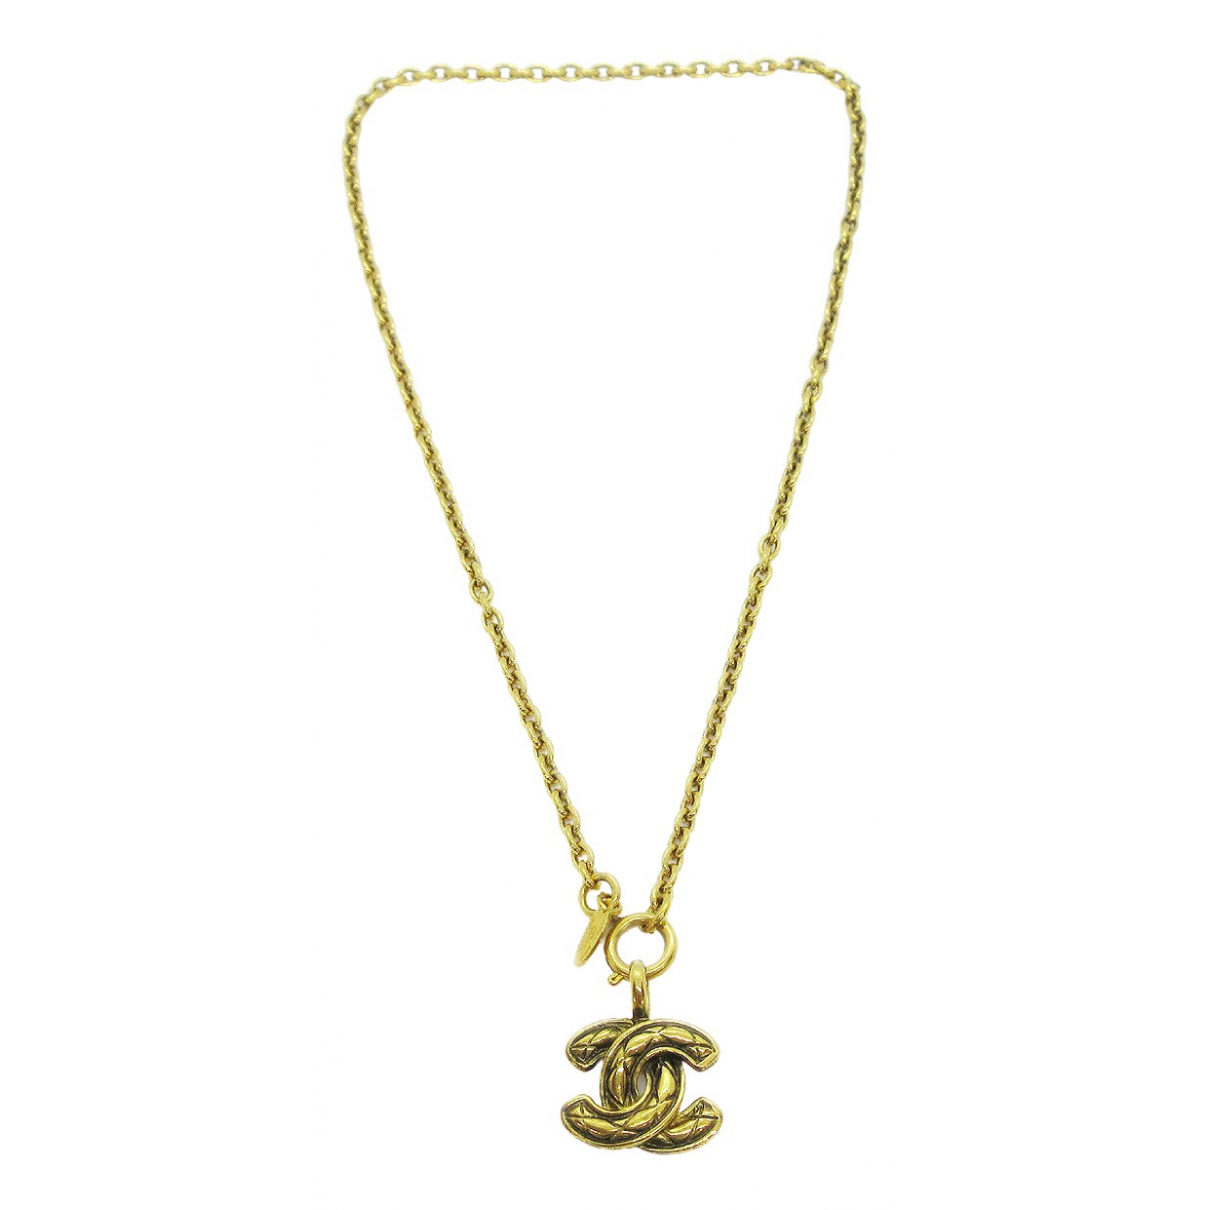 Chanel \N Kette in  Gold Metall